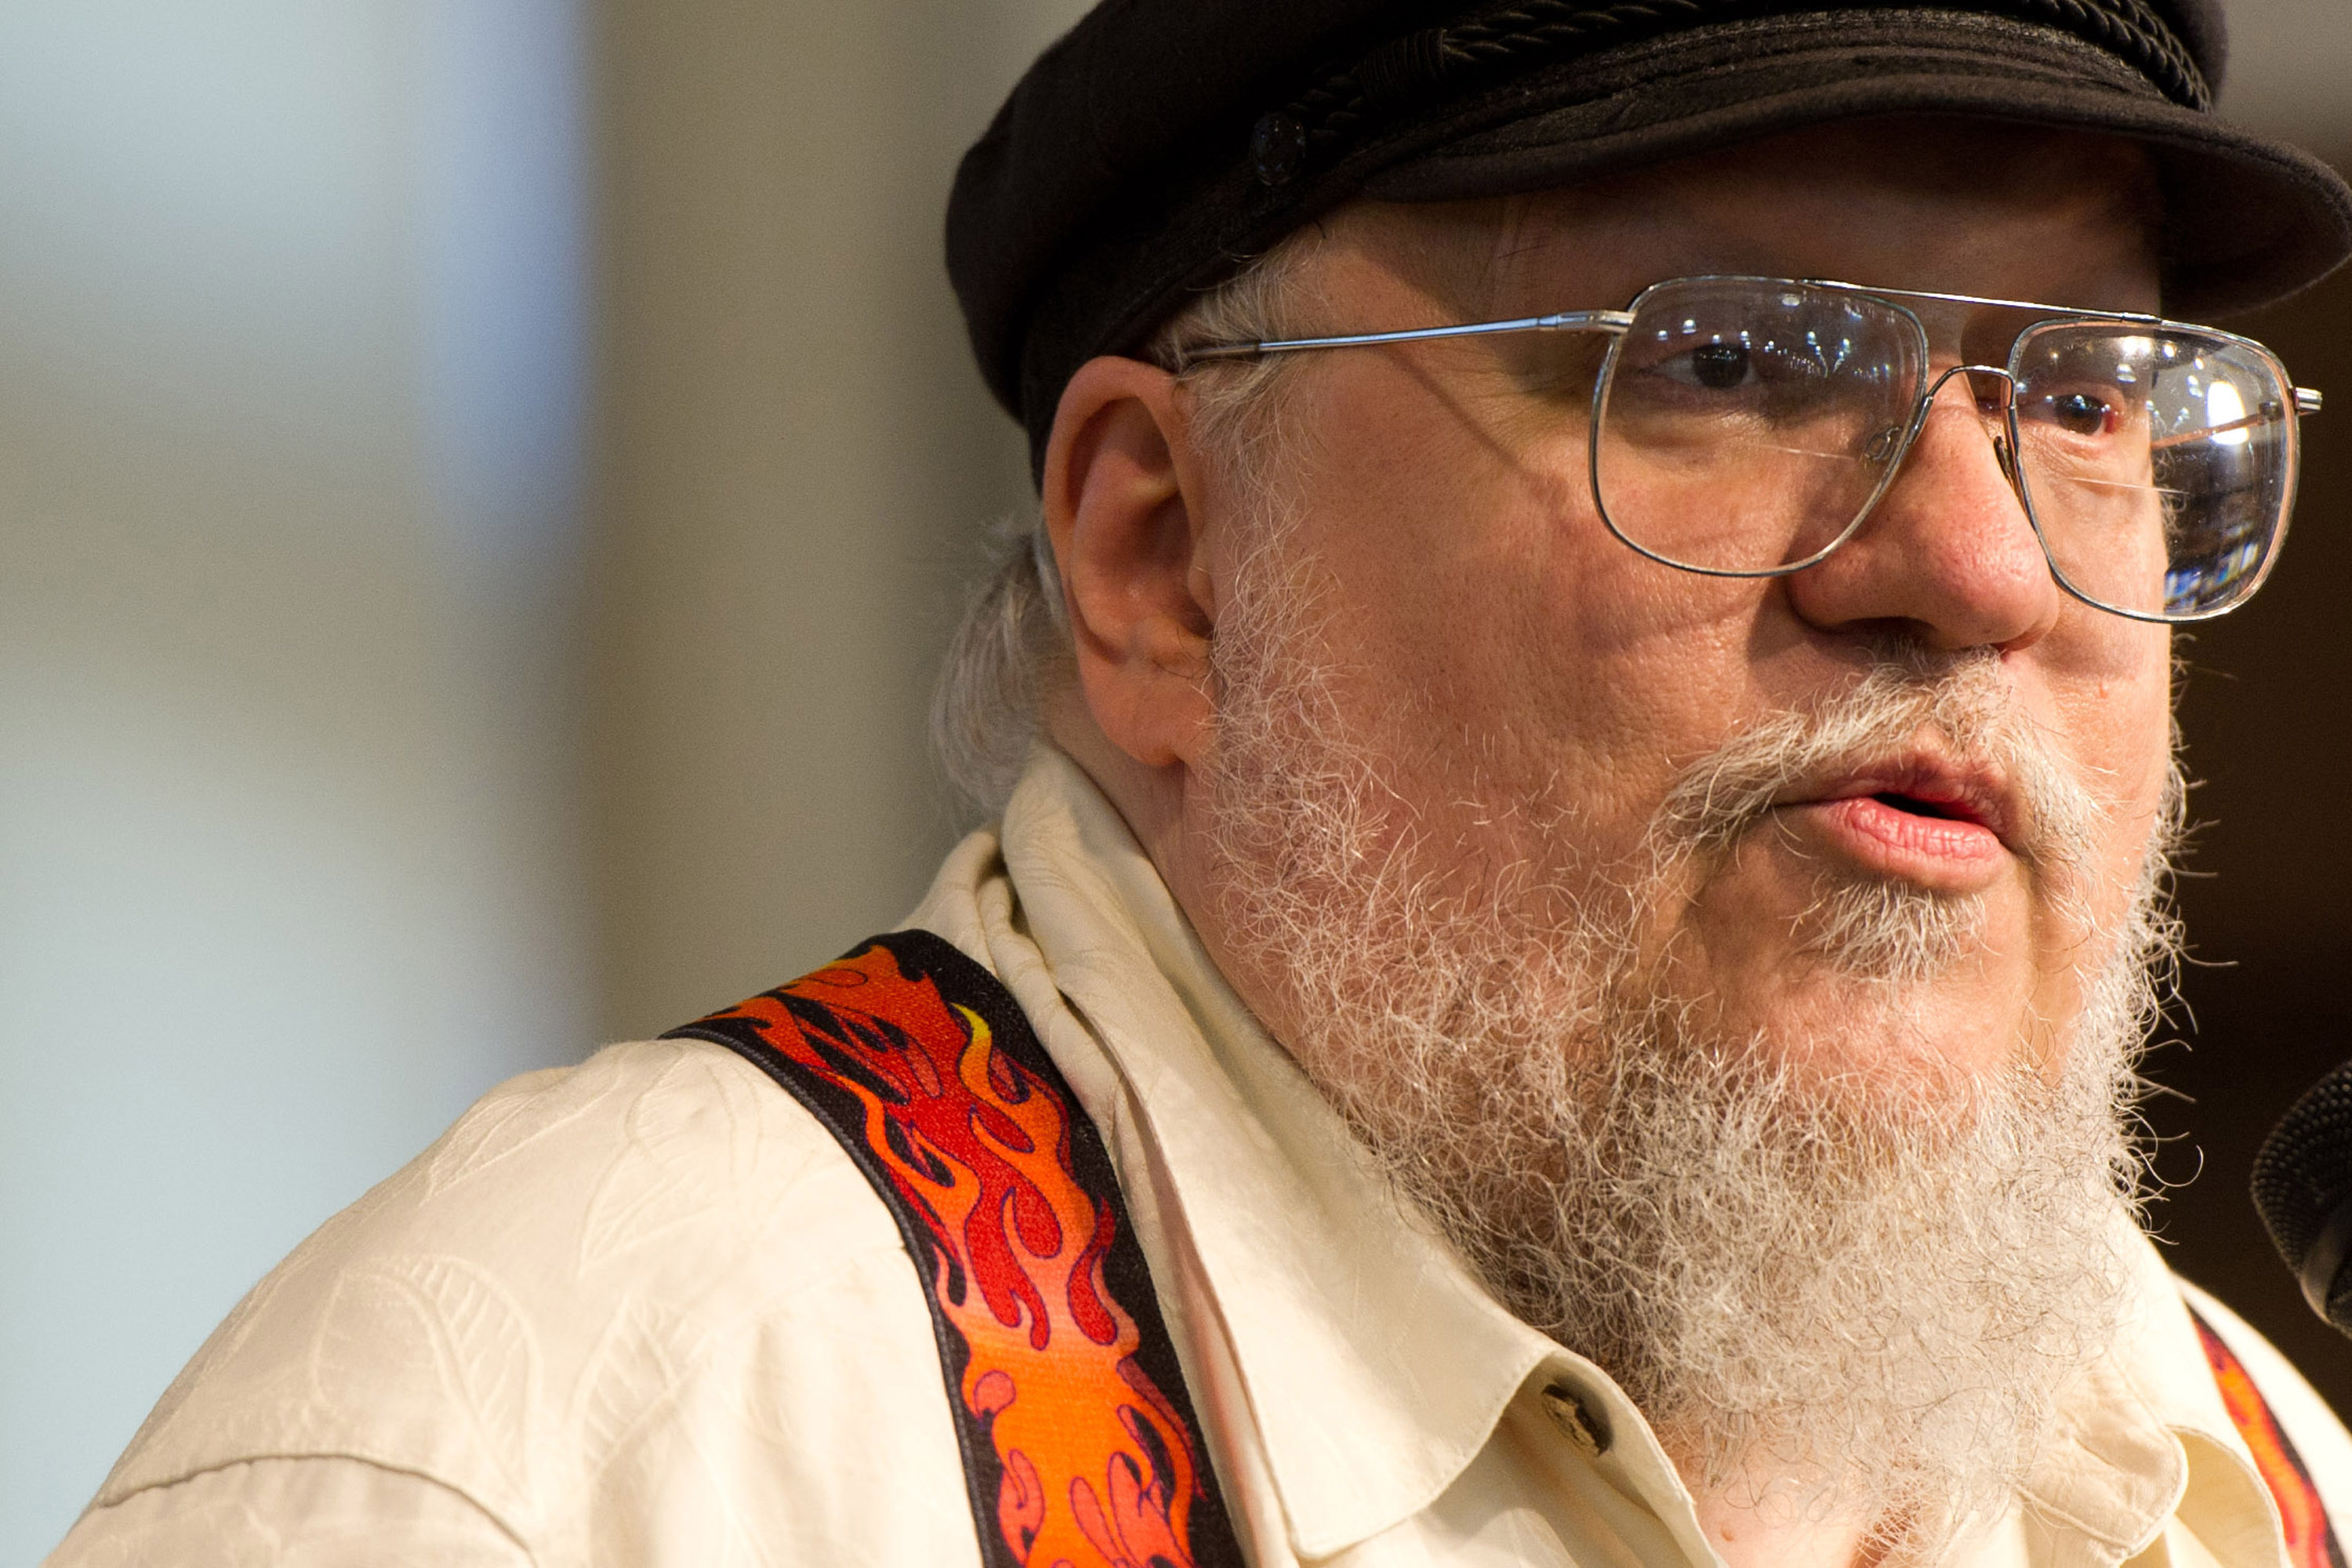 George R.R. Martin recalls TV pilot with alien at Super Bowl